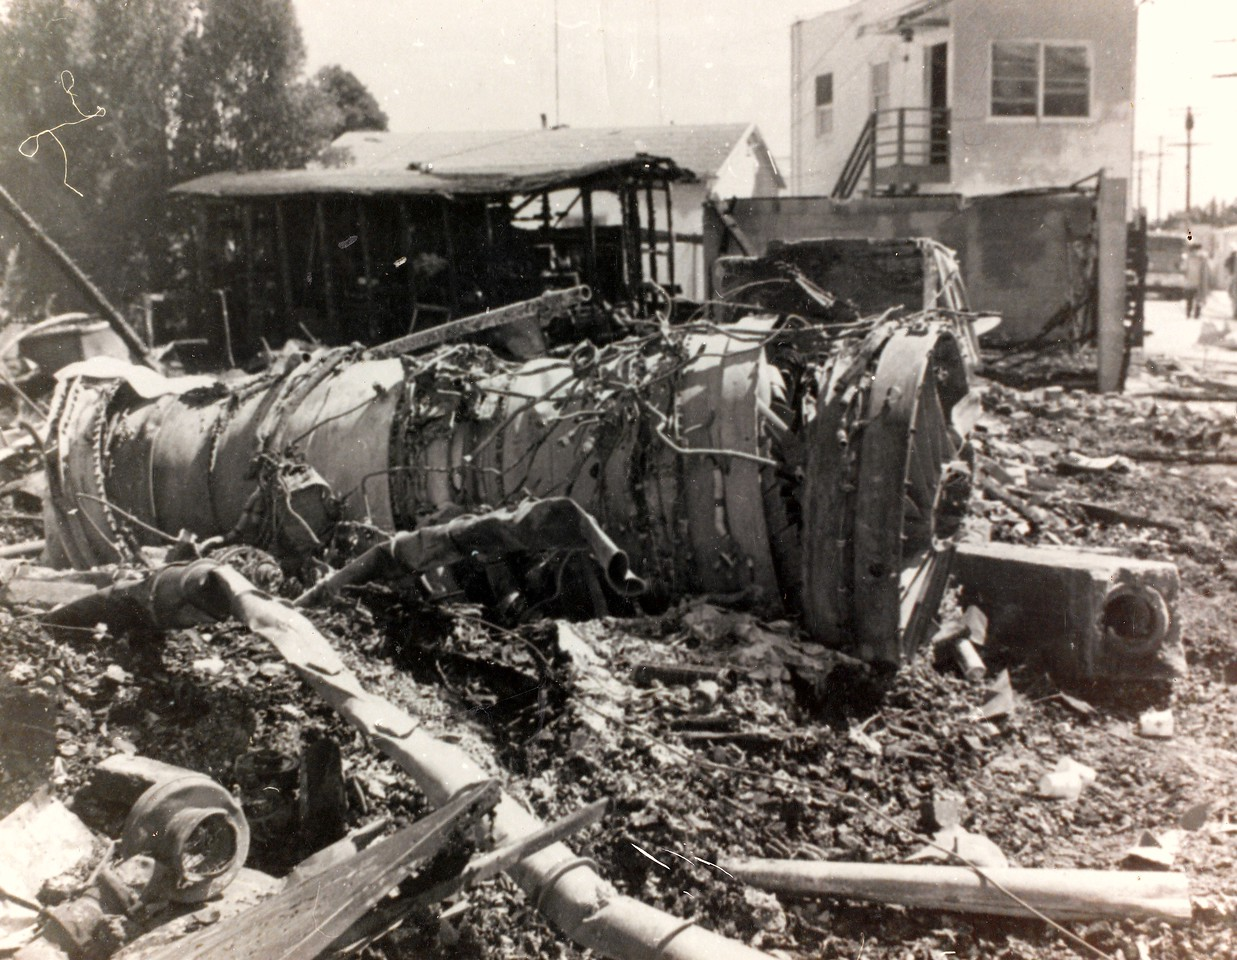 One of three Pratt & Whitney JT8D-7B jet engines lies on a burned foundation at the crash site of the Boeing 727.